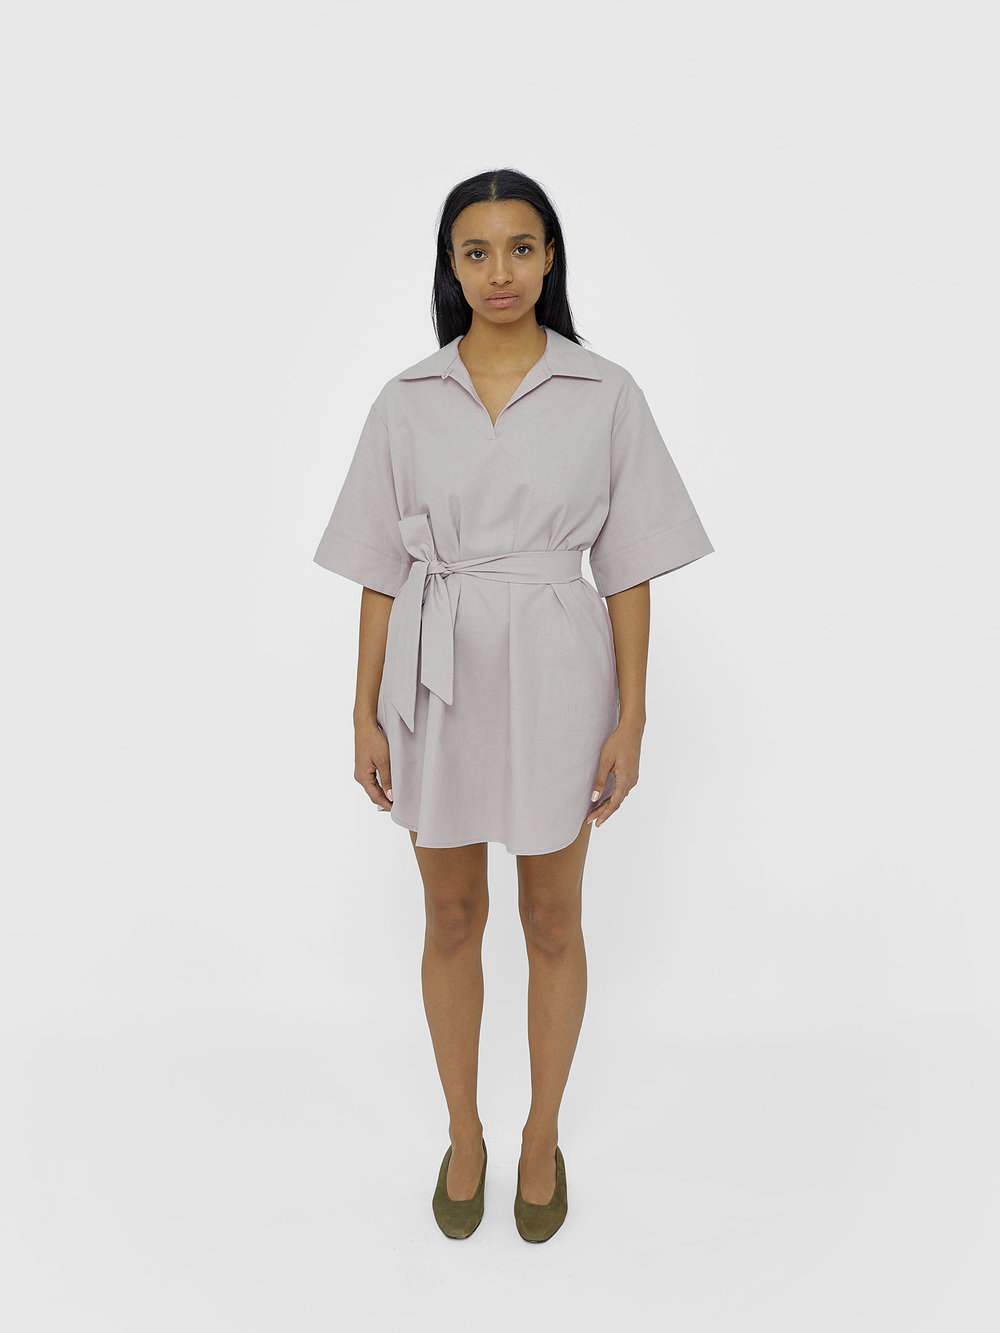 tunic-unisex-lilac-kirsten-one-dna-01.jpg